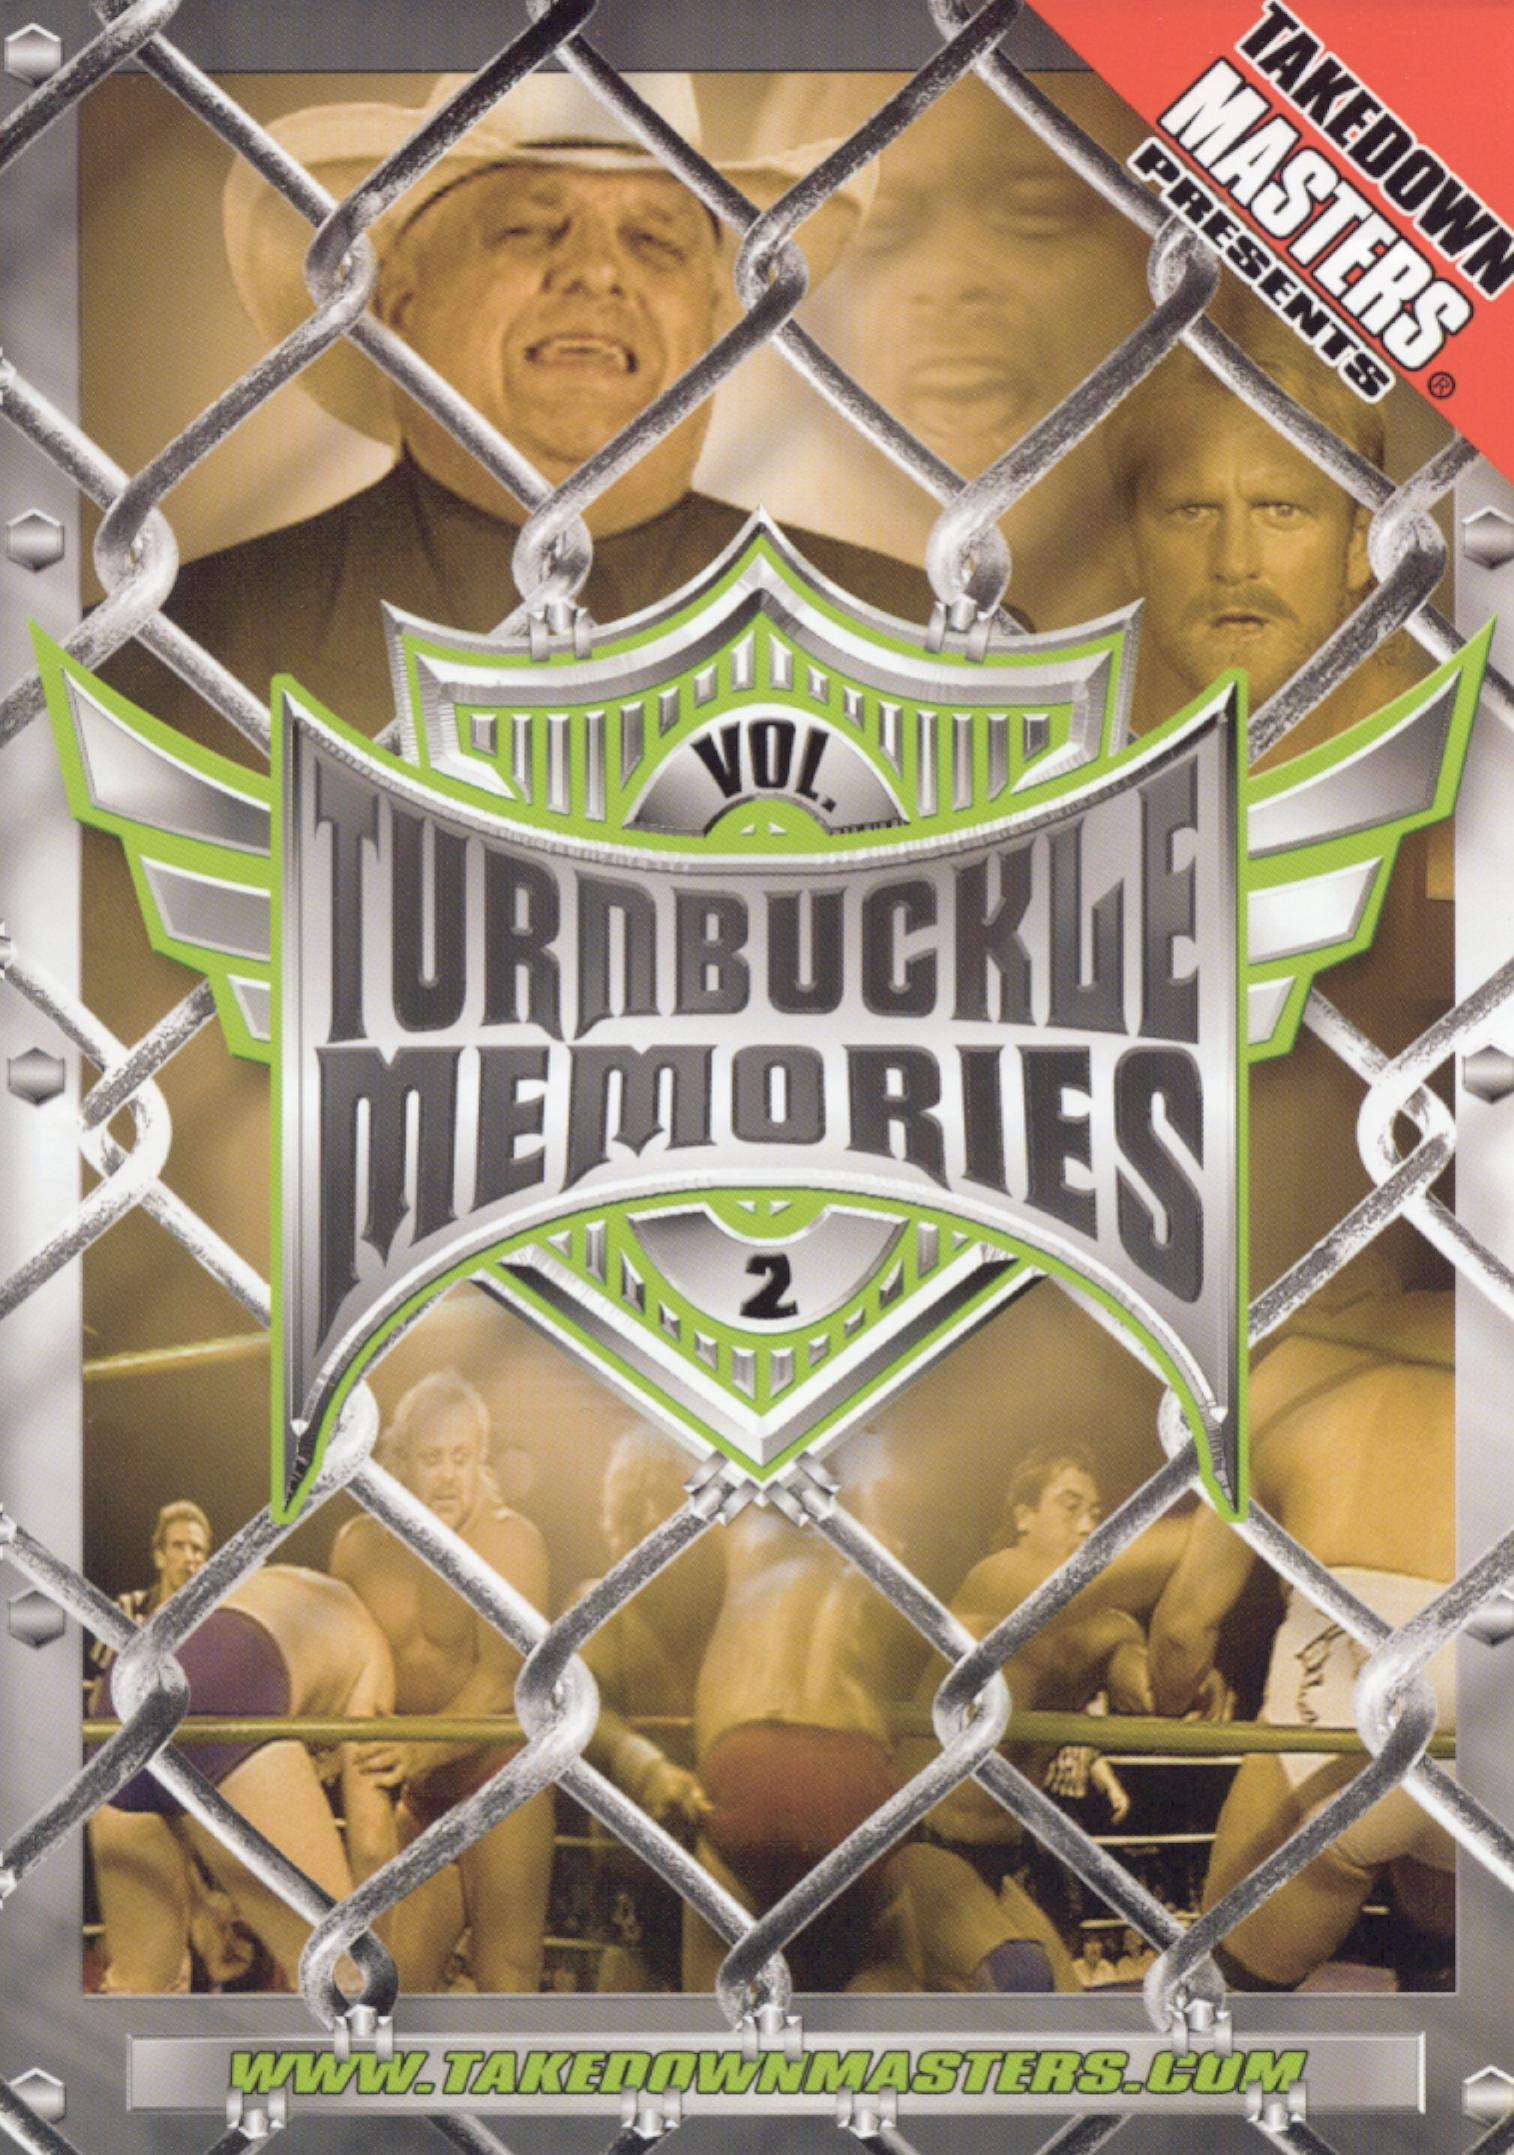 Takedown Masters: Turnbuckle Memories, Vol. 2